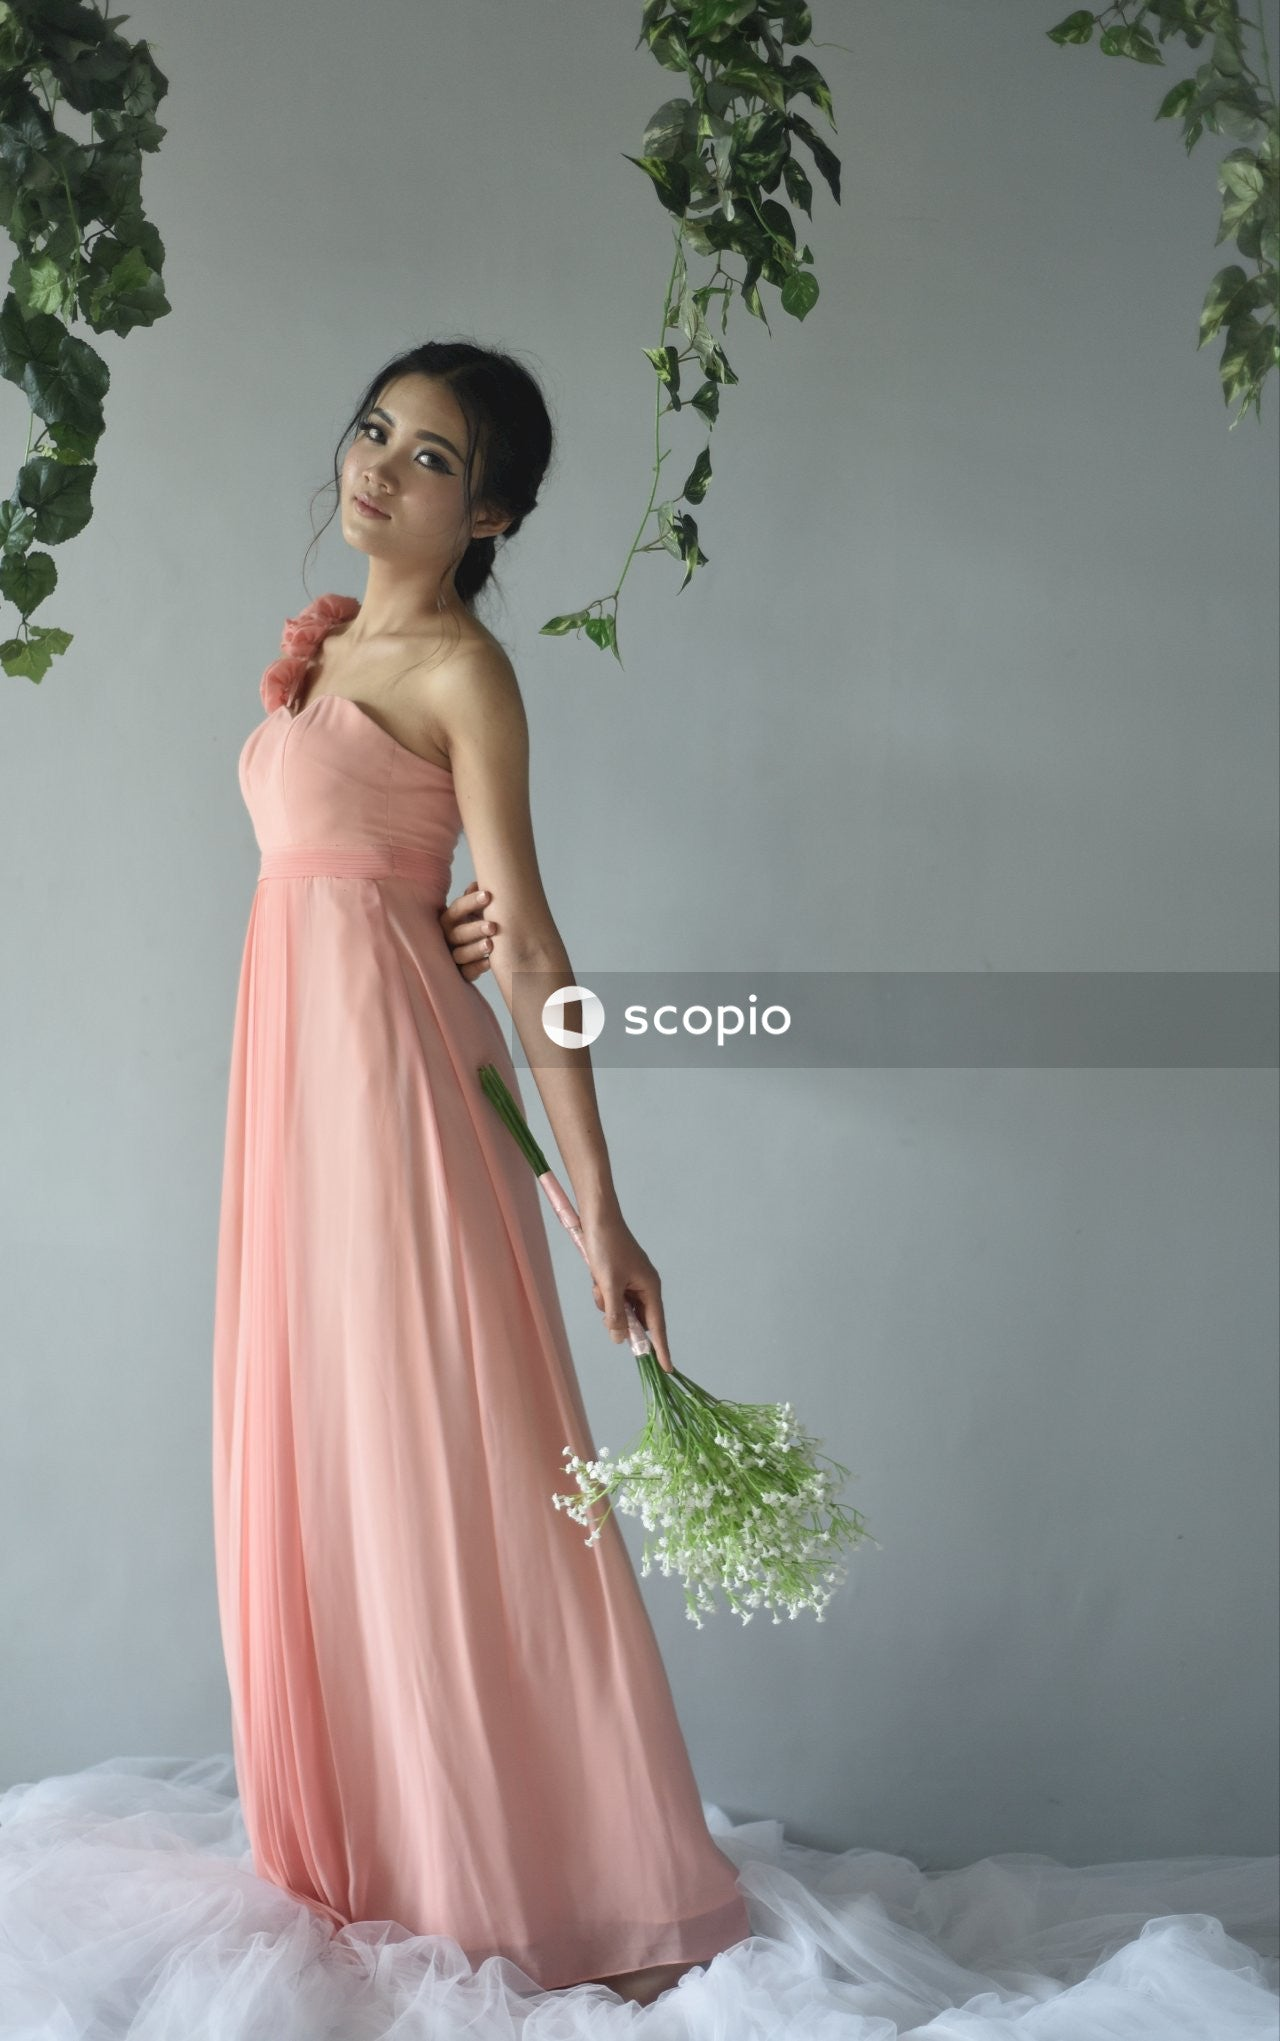 Woman in pink dress holding bouquet of flowers